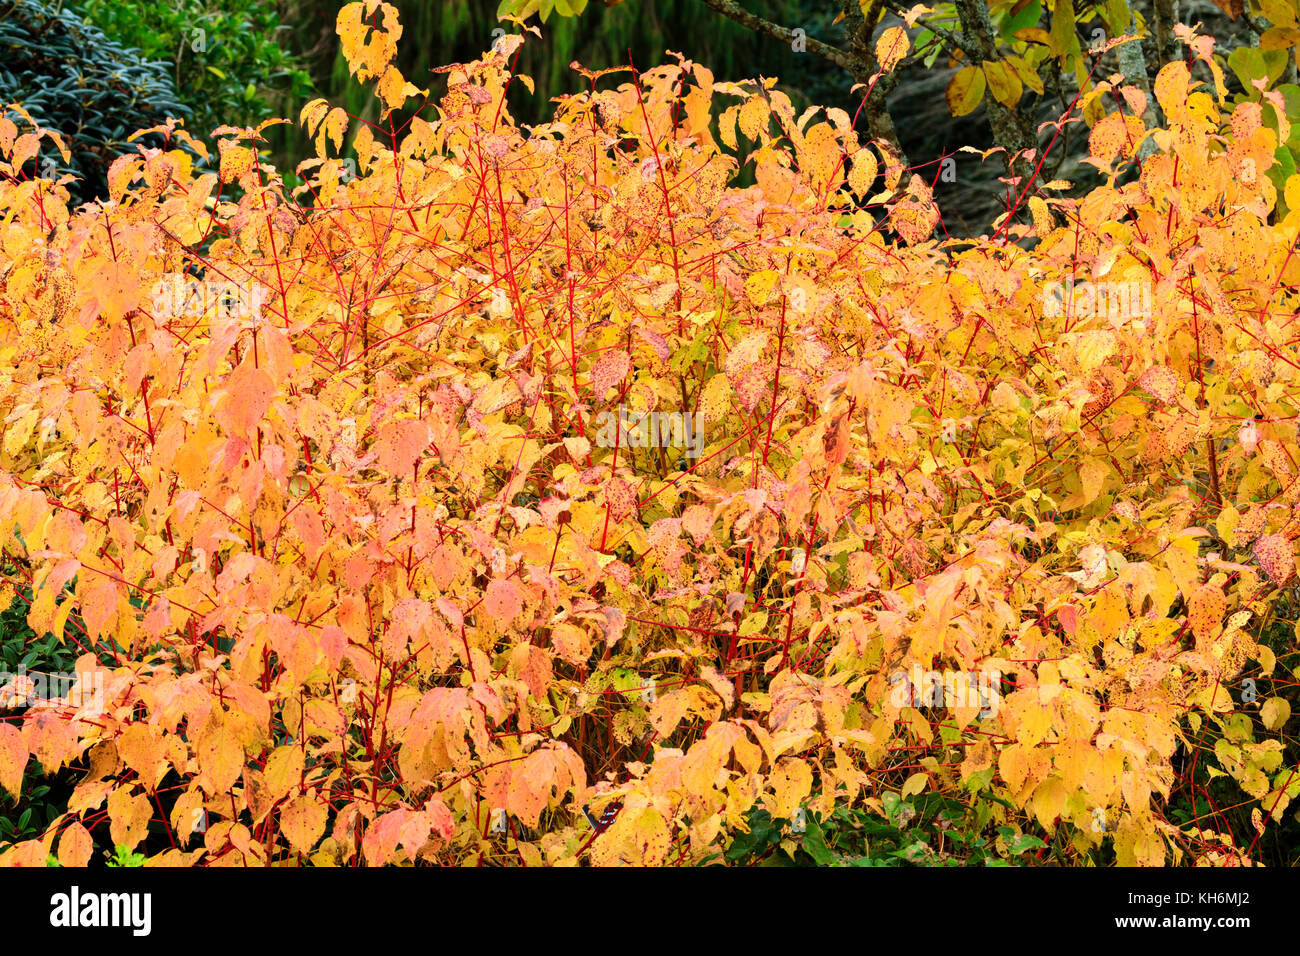 Red stems that will provide winter colour shine among the yellow Autumn foliage of the hardy Cornus sanguinea Anny's - Stock Image